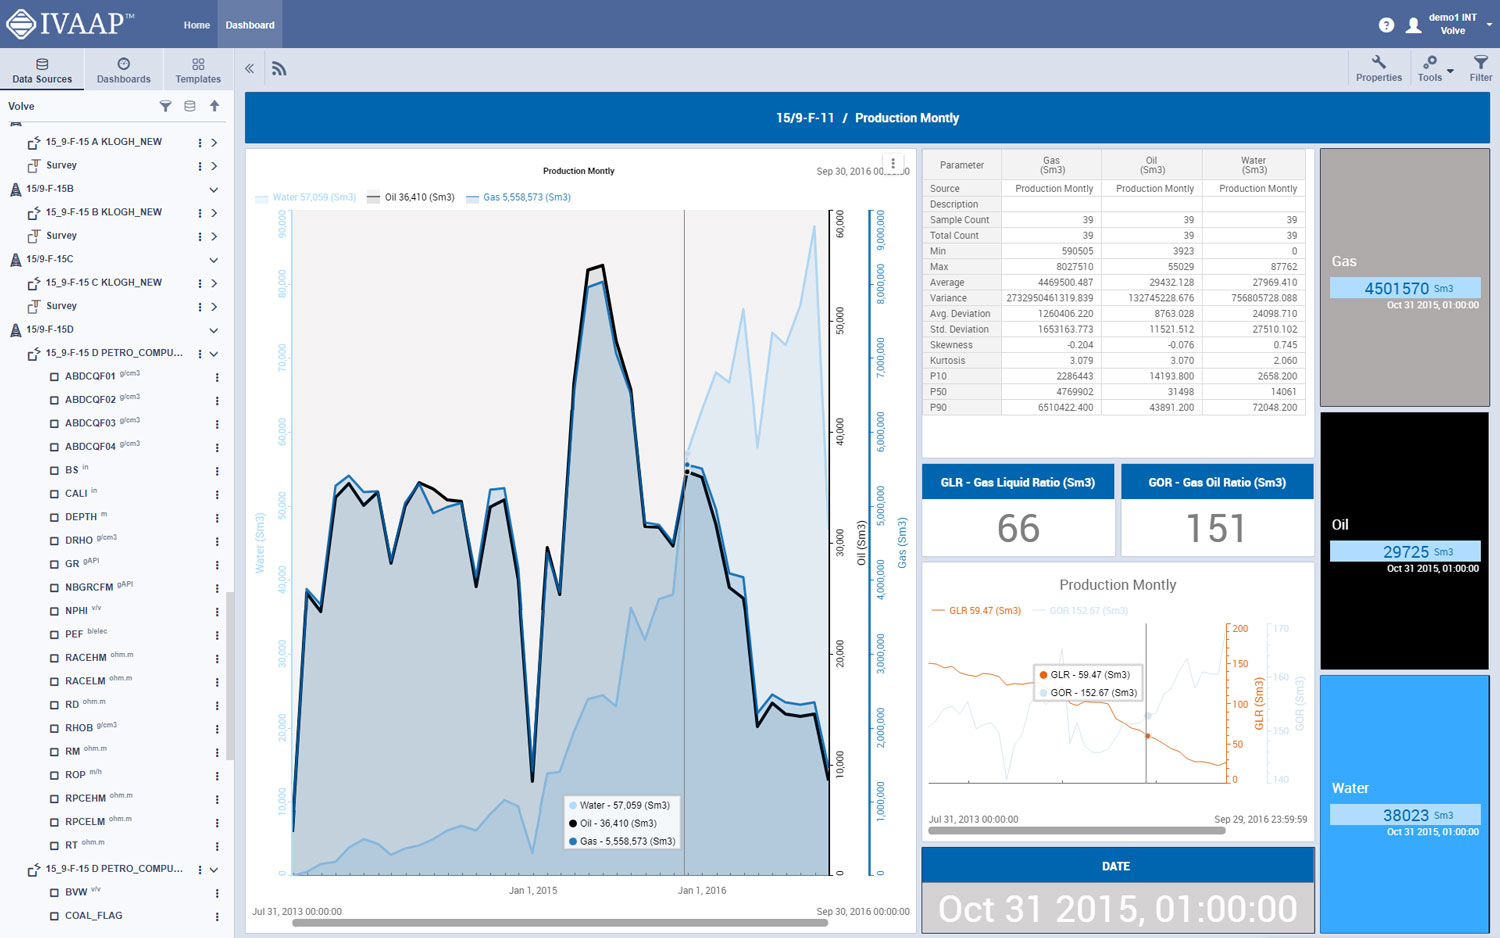 IVAAP: Cloud-Enabled Visualization and Analytics Platform